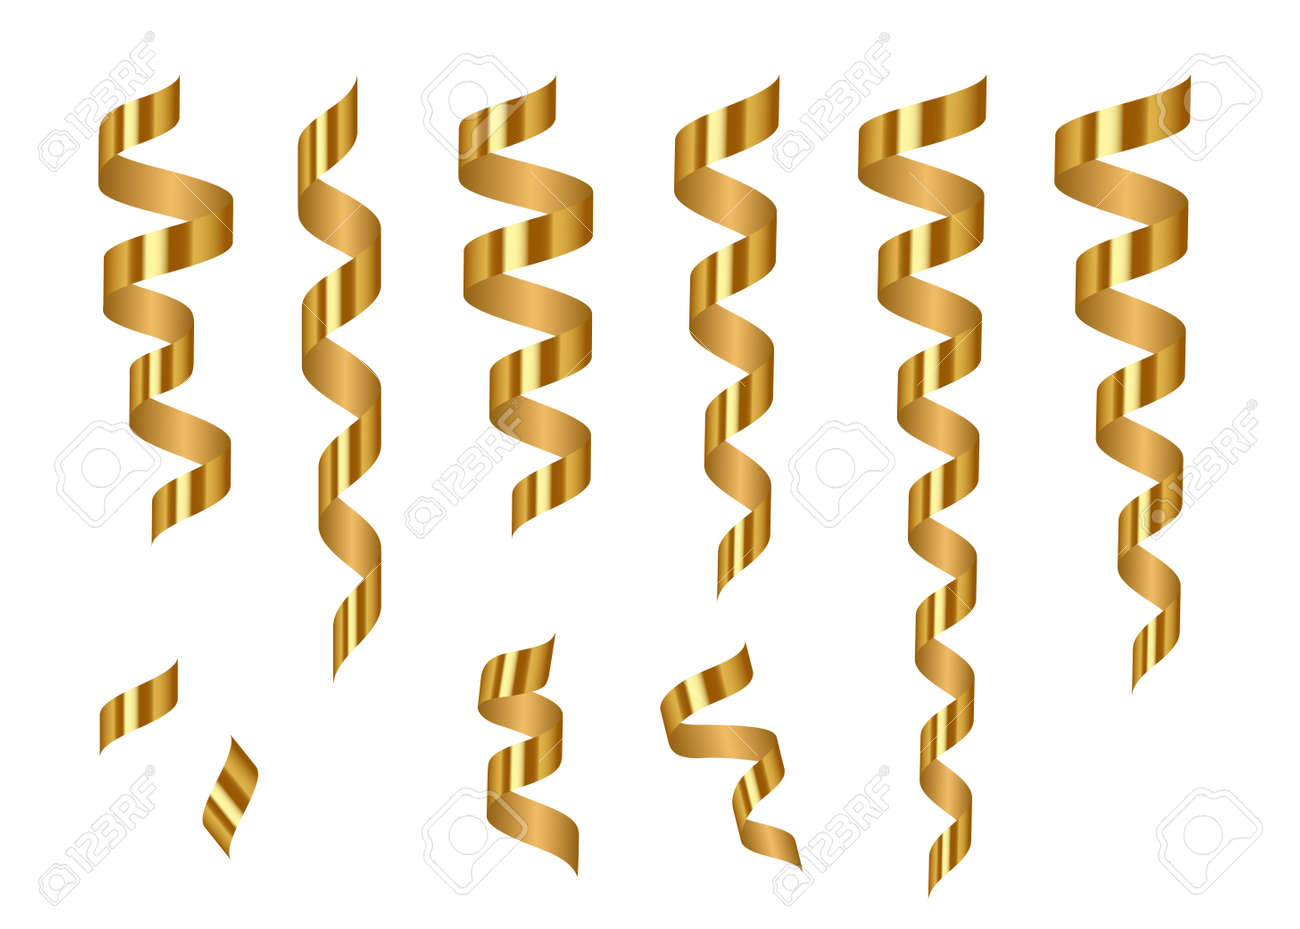 gold shiny serpentine ribbons isolated on transparent background decoration for carnival fiesta birthday